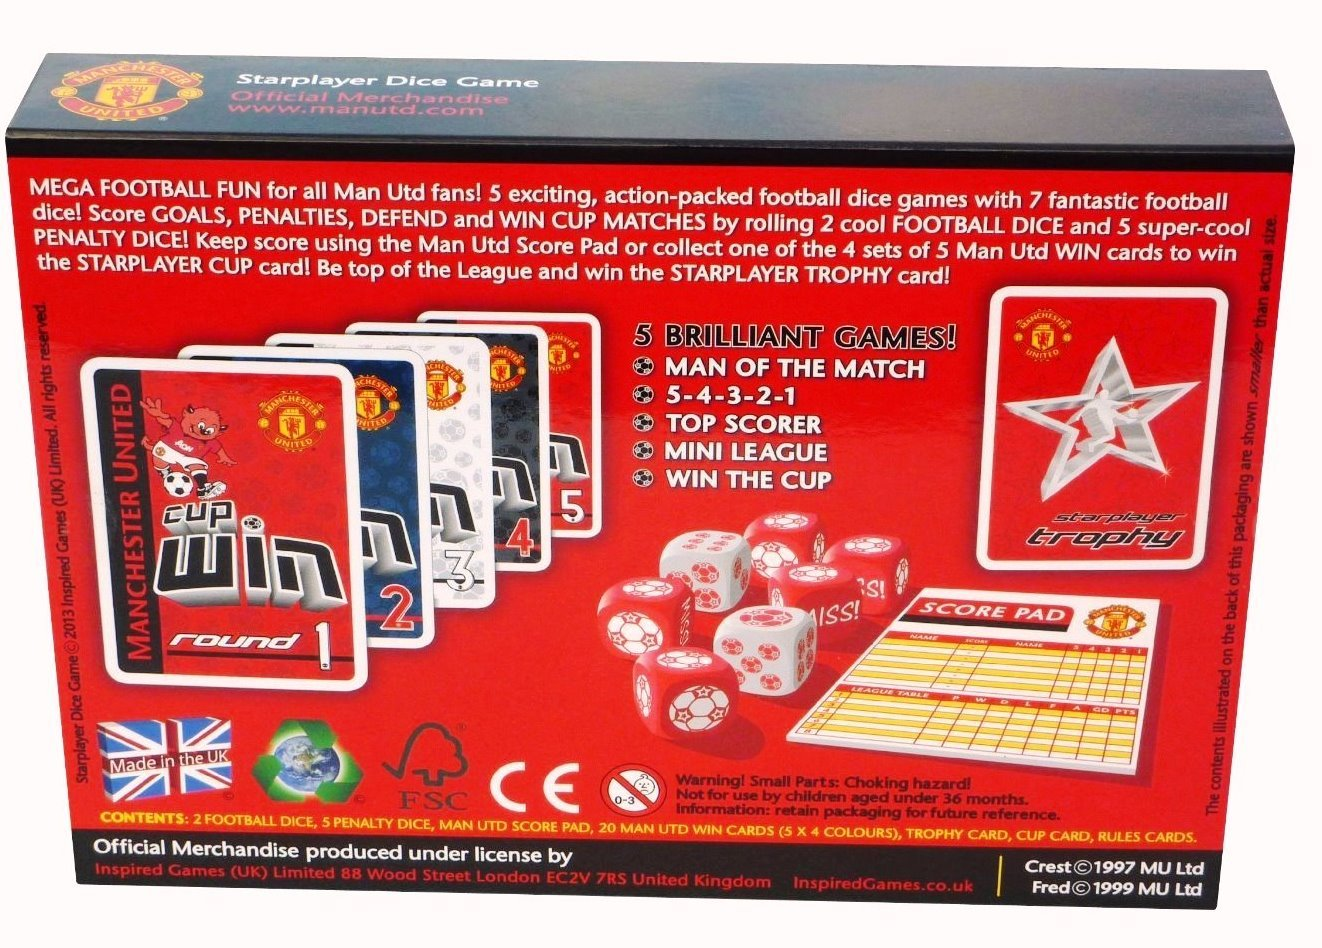 Starplayer Manchester United Dice Game Toys Games The Objective Of Circuit Is To Build An Electronic Based On